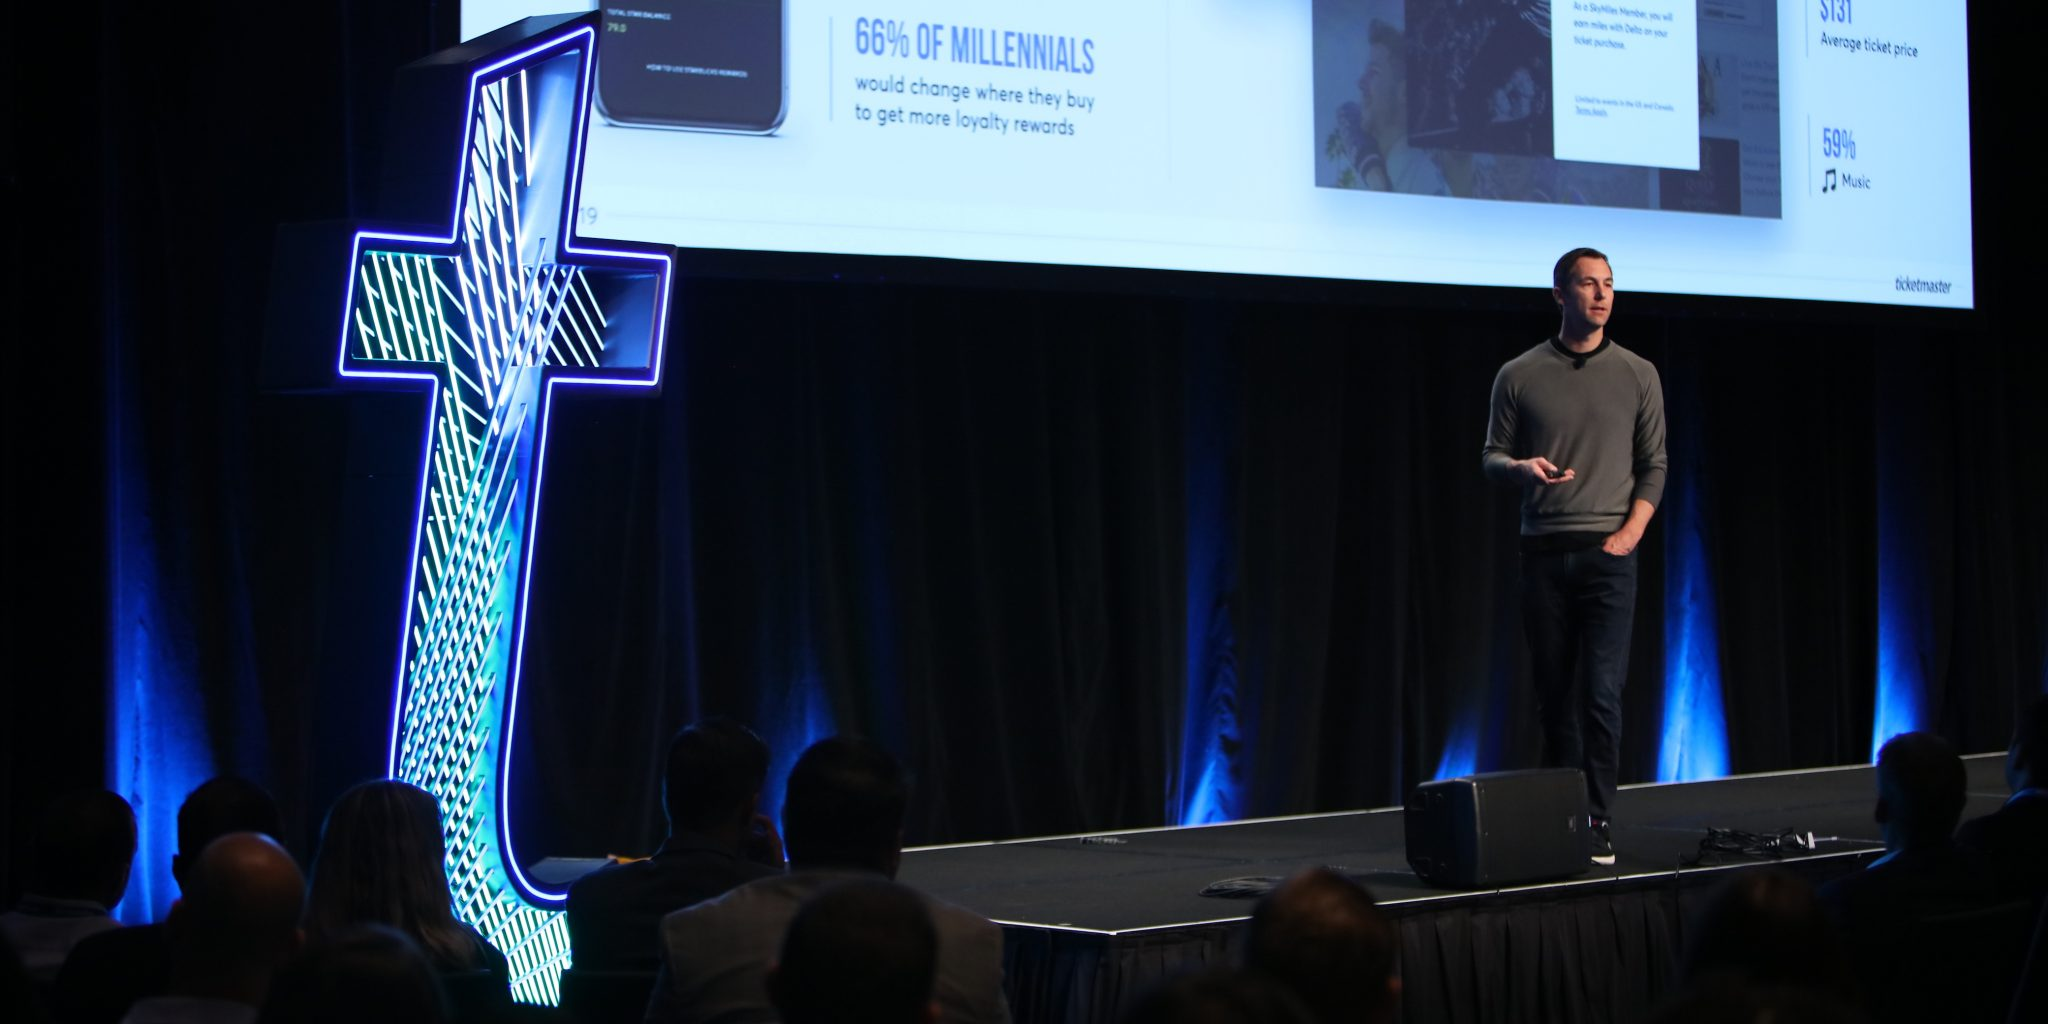 Ticketmaster Showcases Tech at Summit